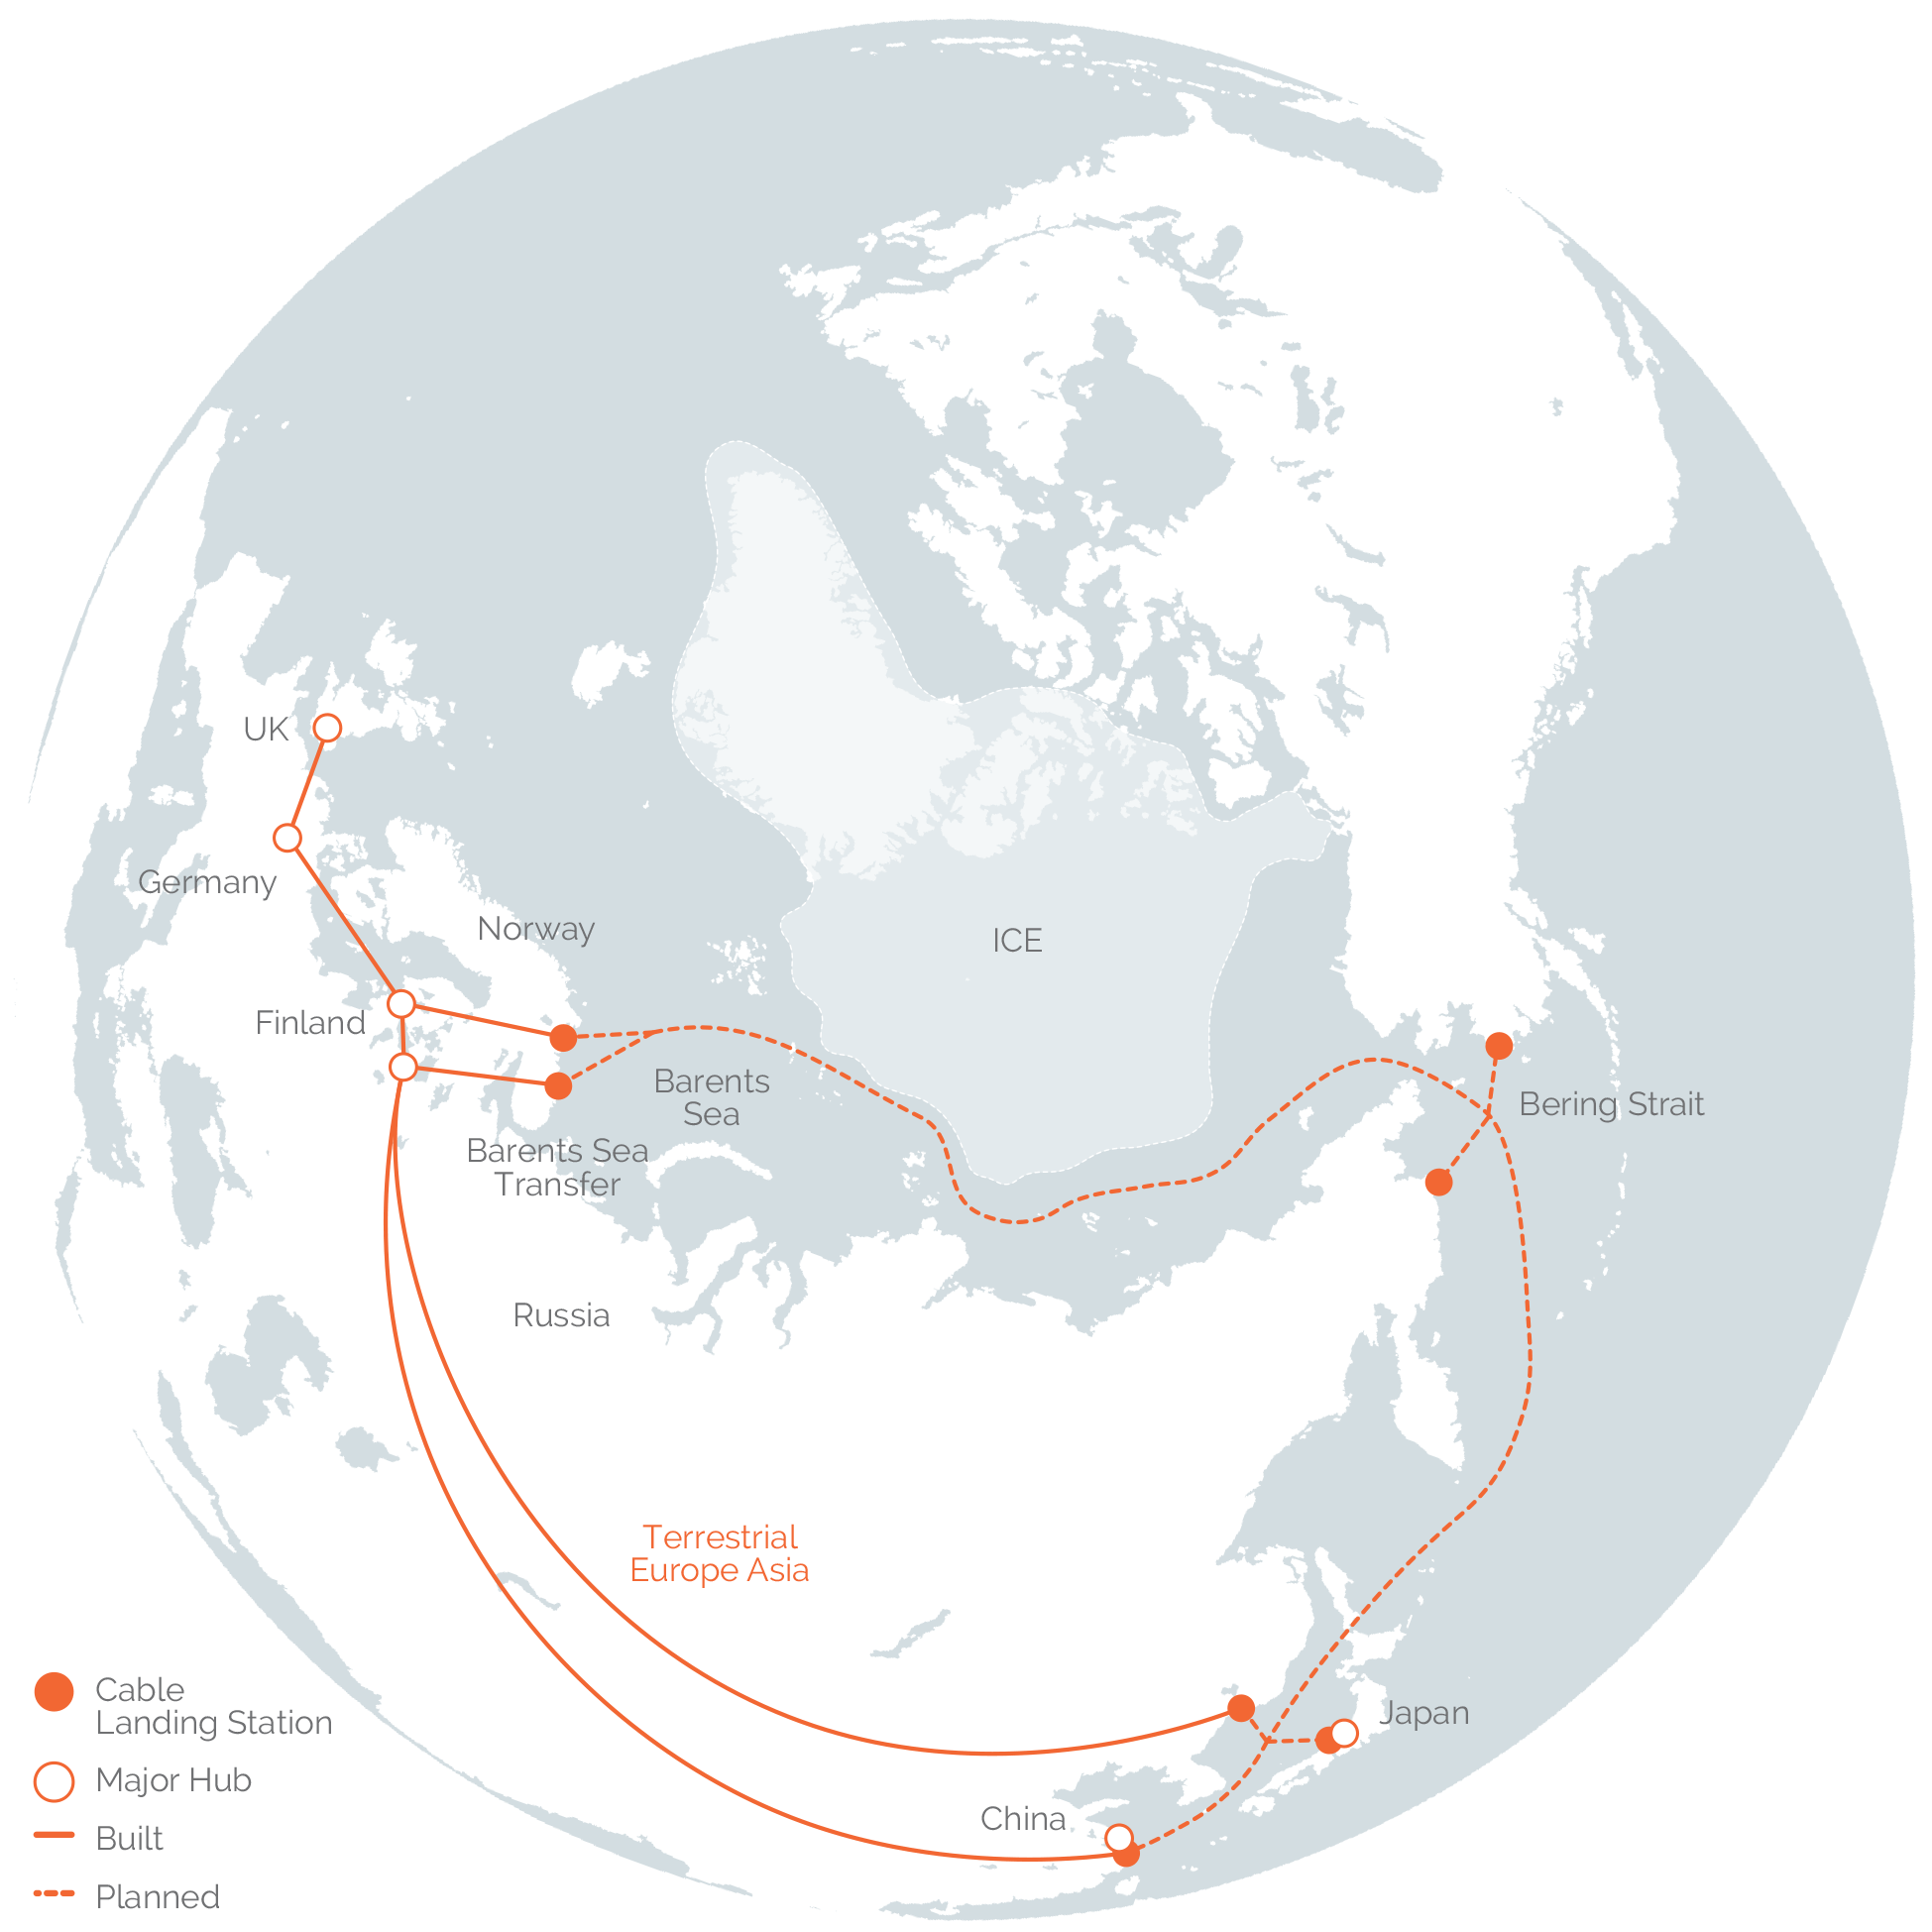 Arctic Connect Cable Route